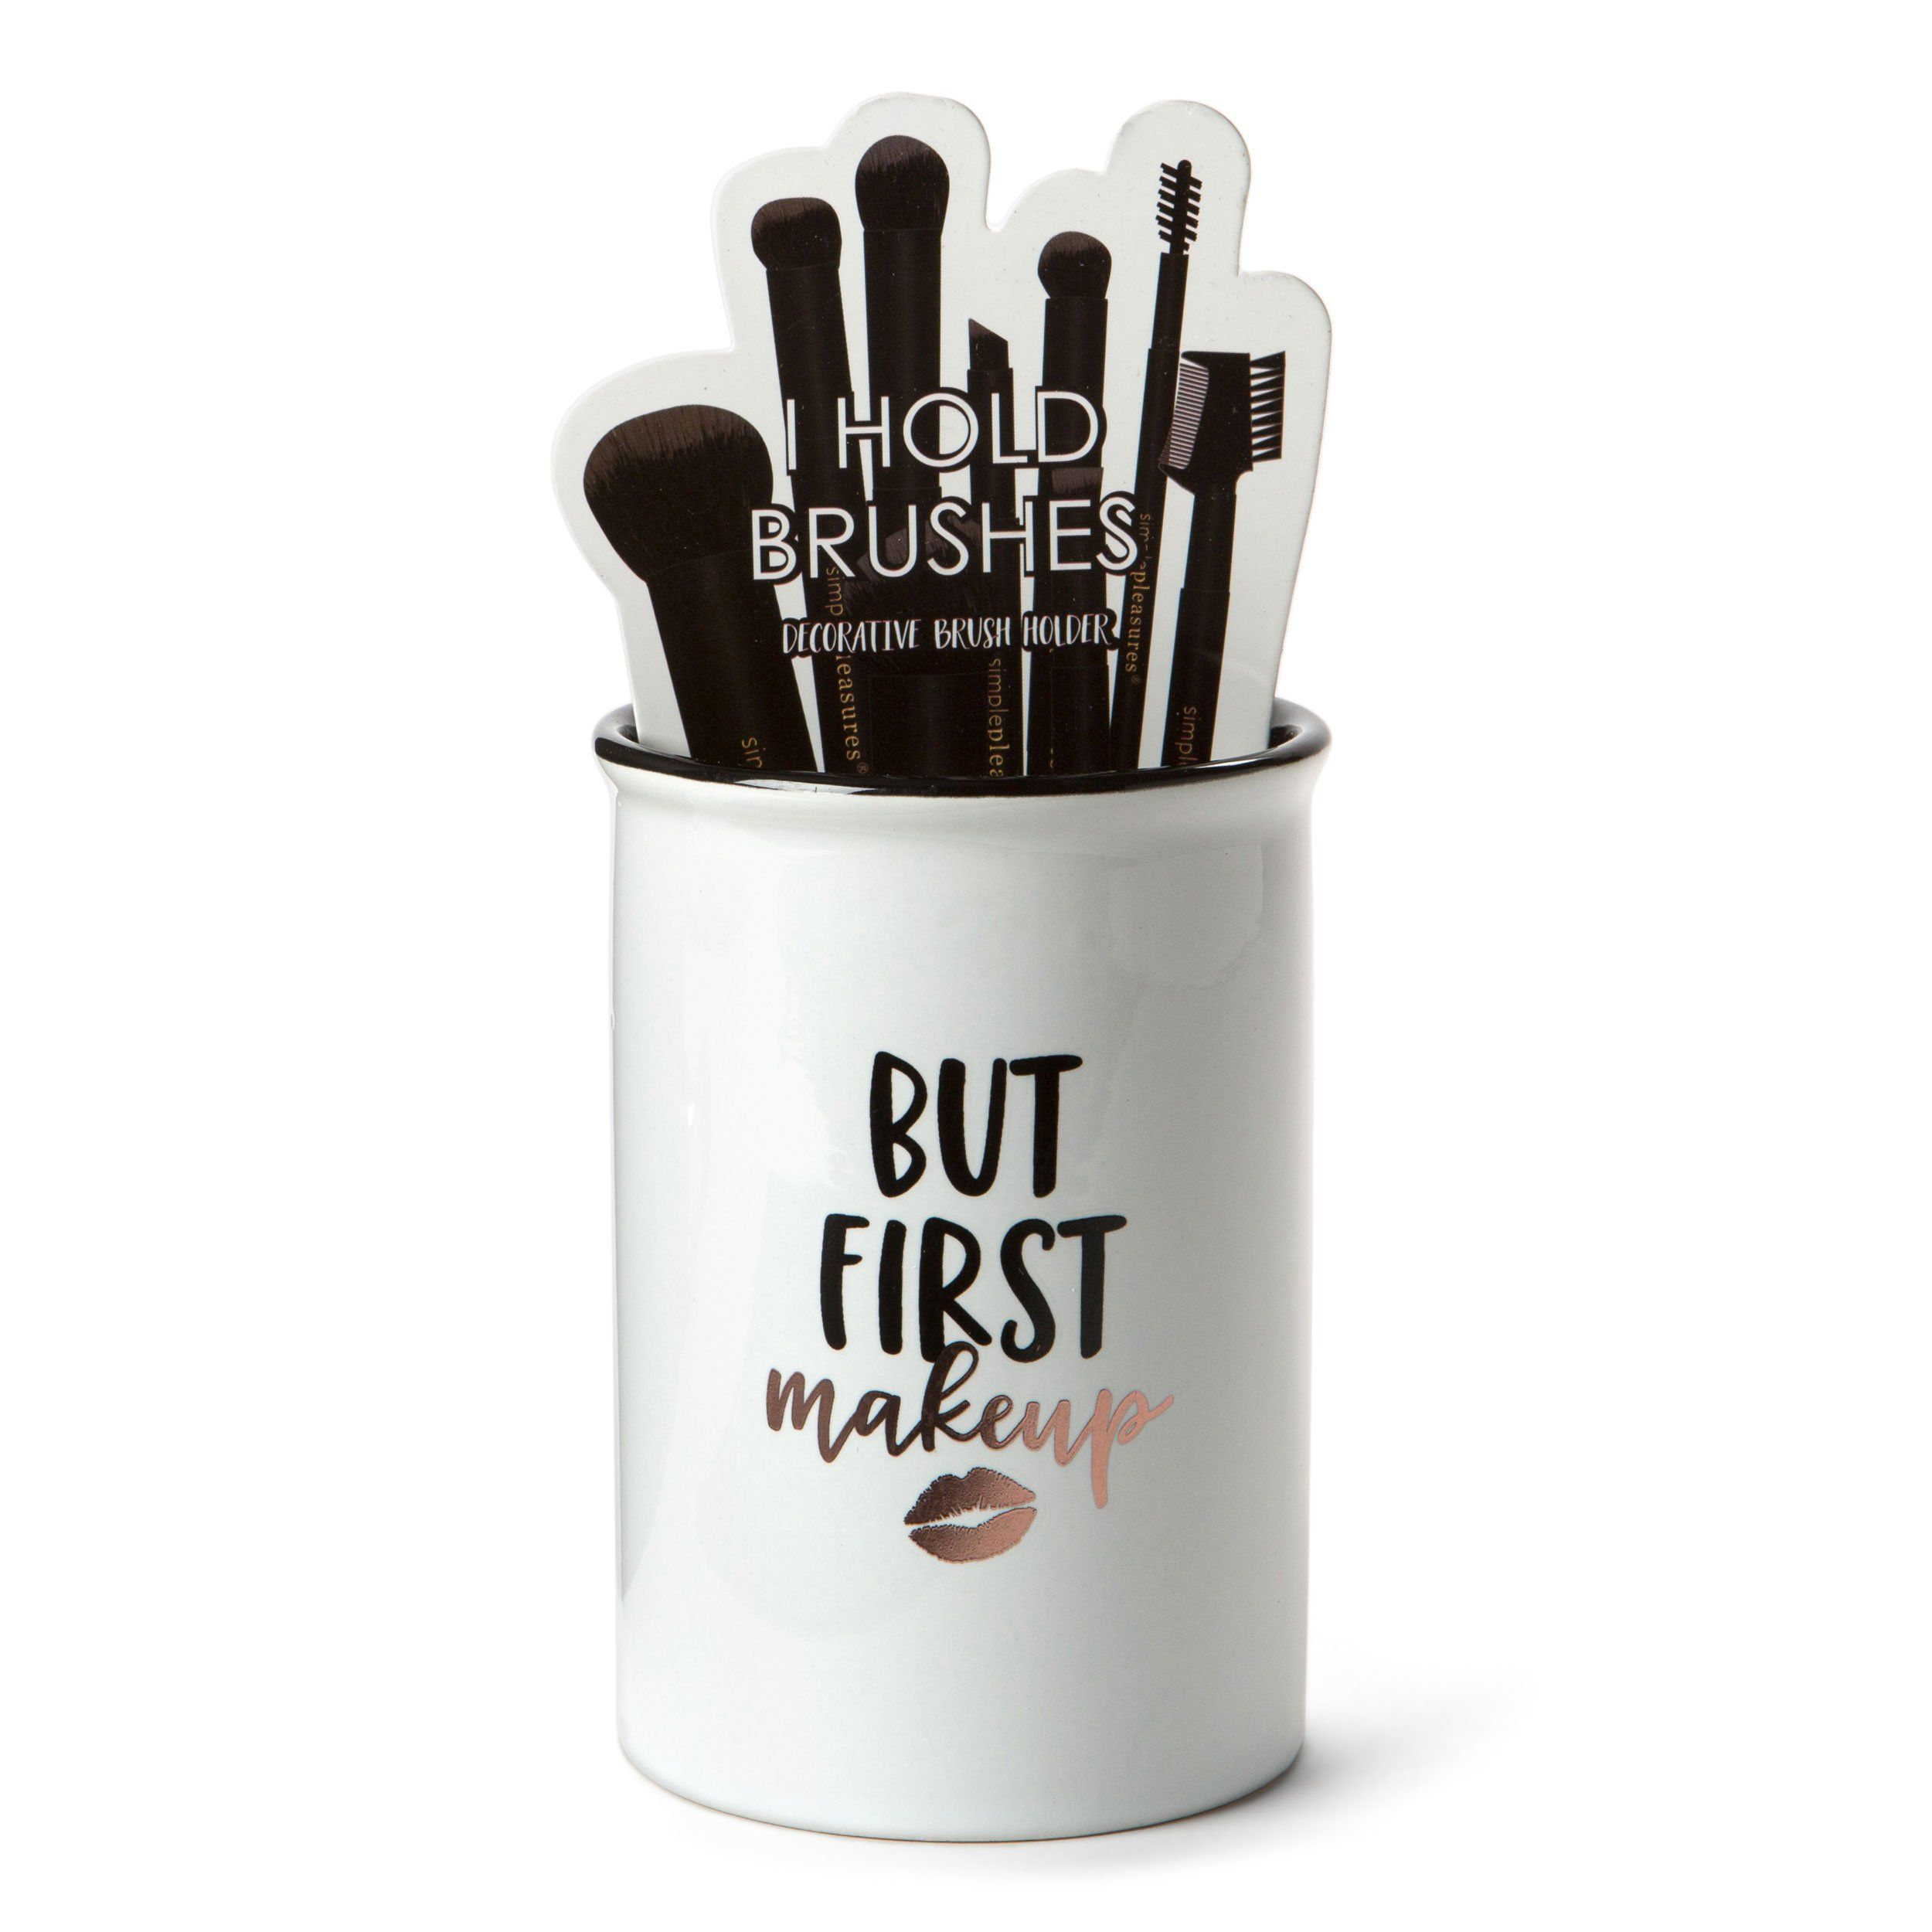 MakeUp Brush Holders (But First Make up) Ceramic brush